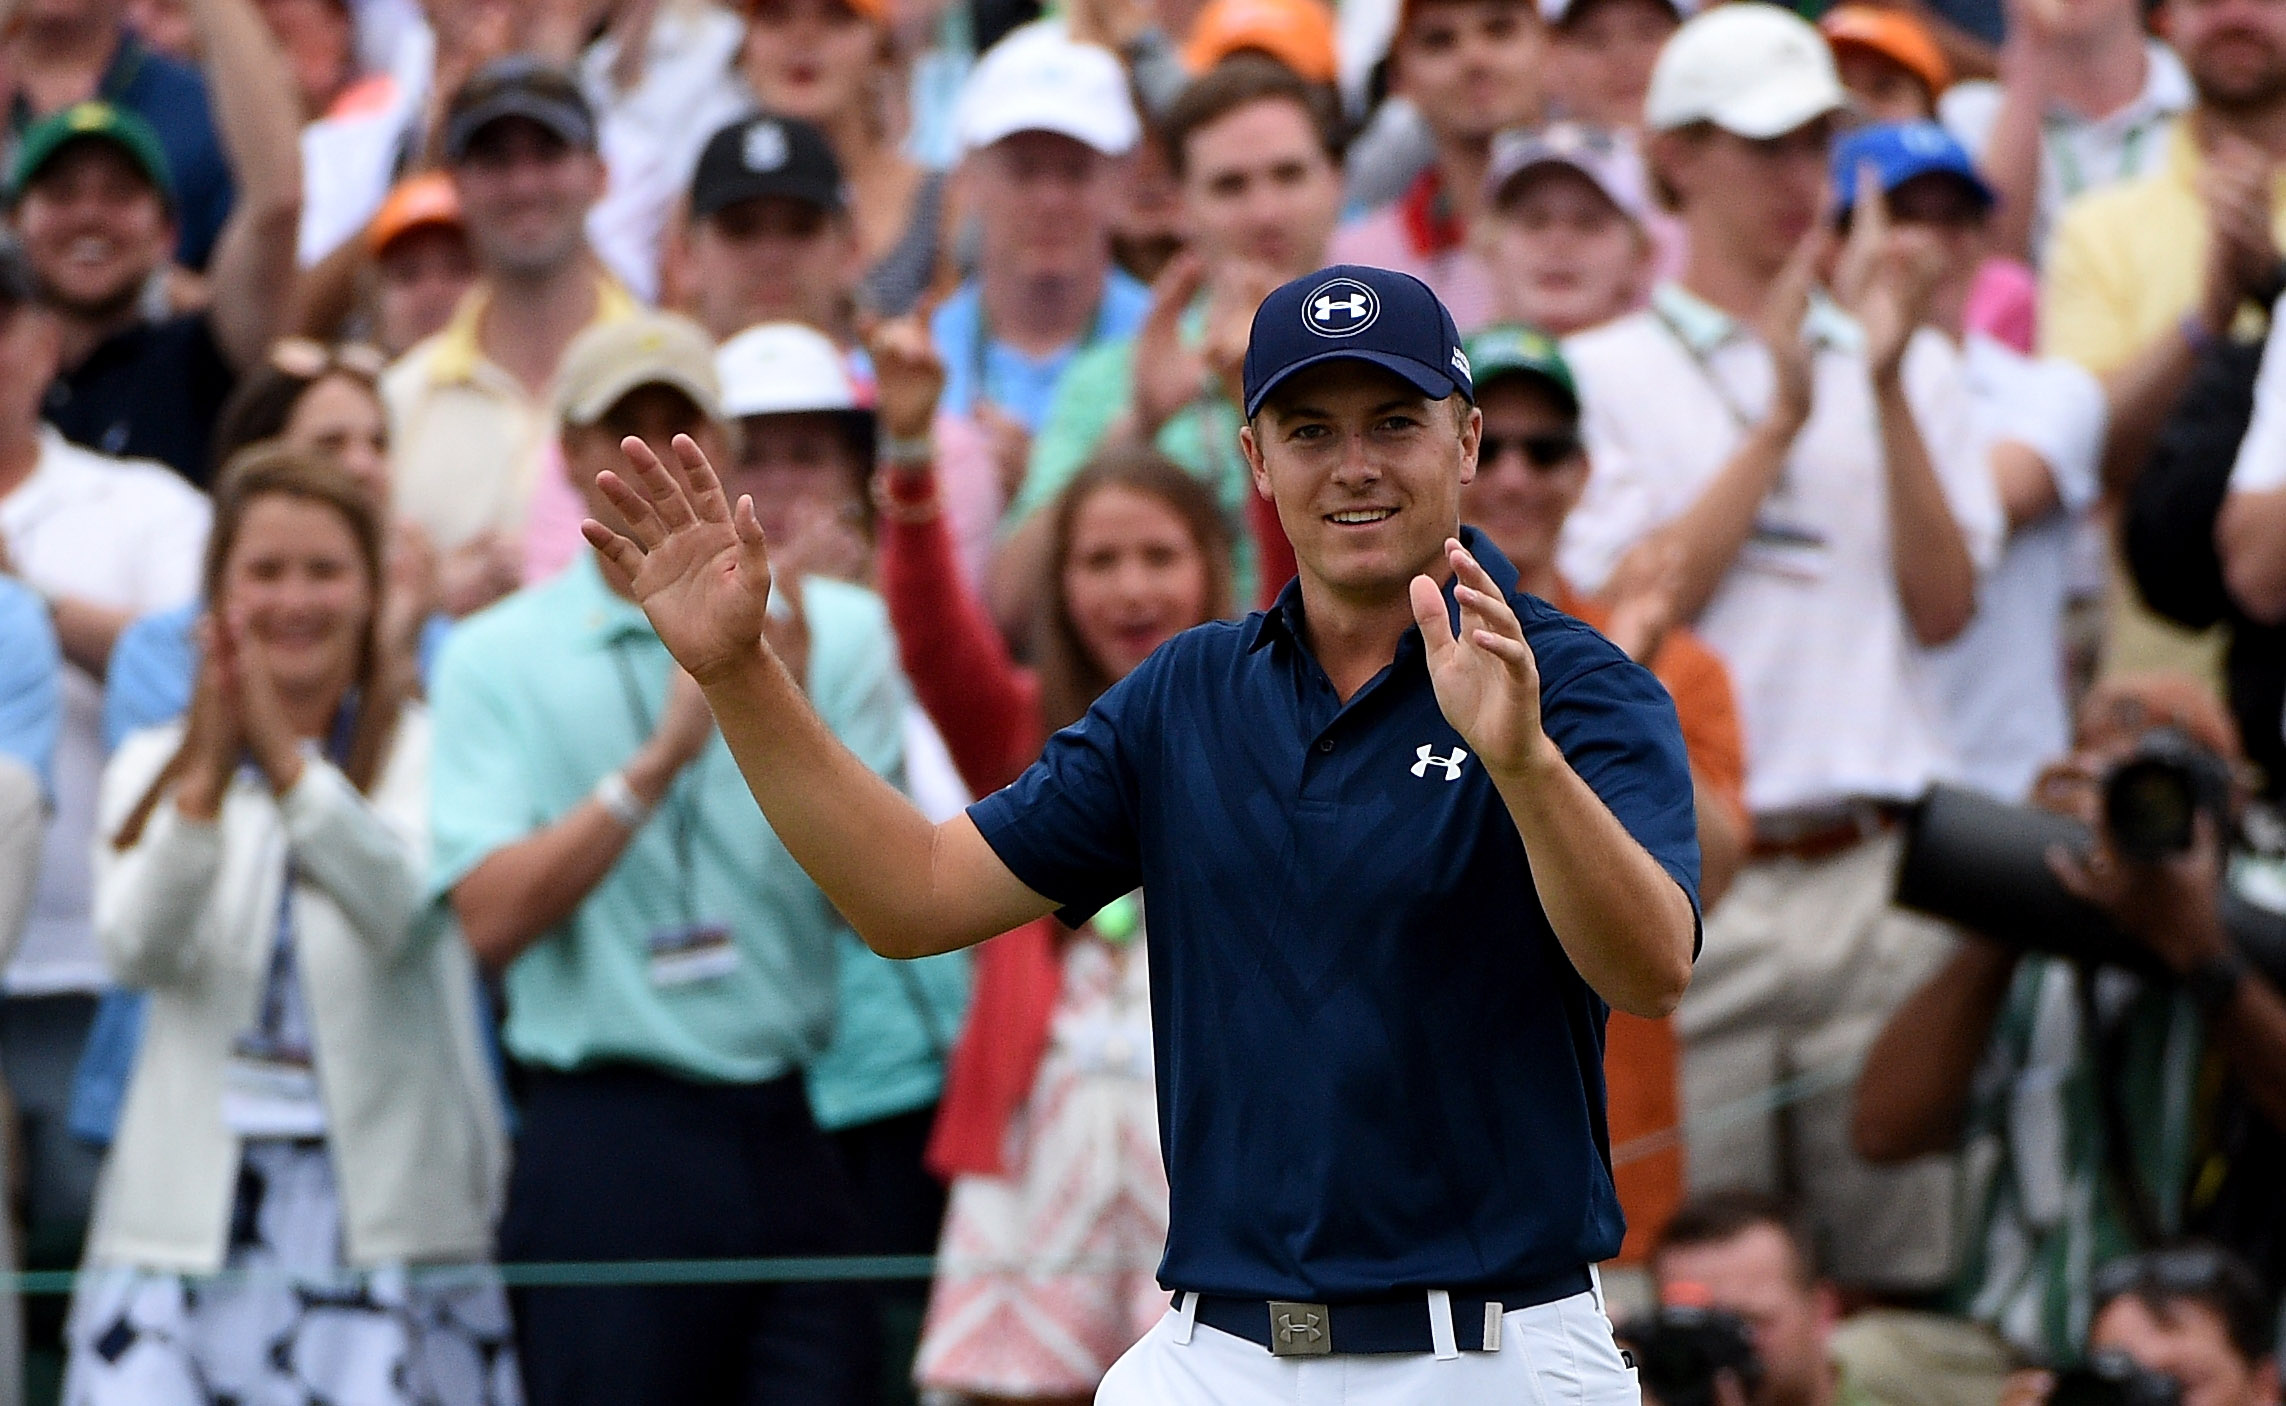 Jordan Spieth acknowledges the crowd at Augusta National after winning the 2015 Masters.